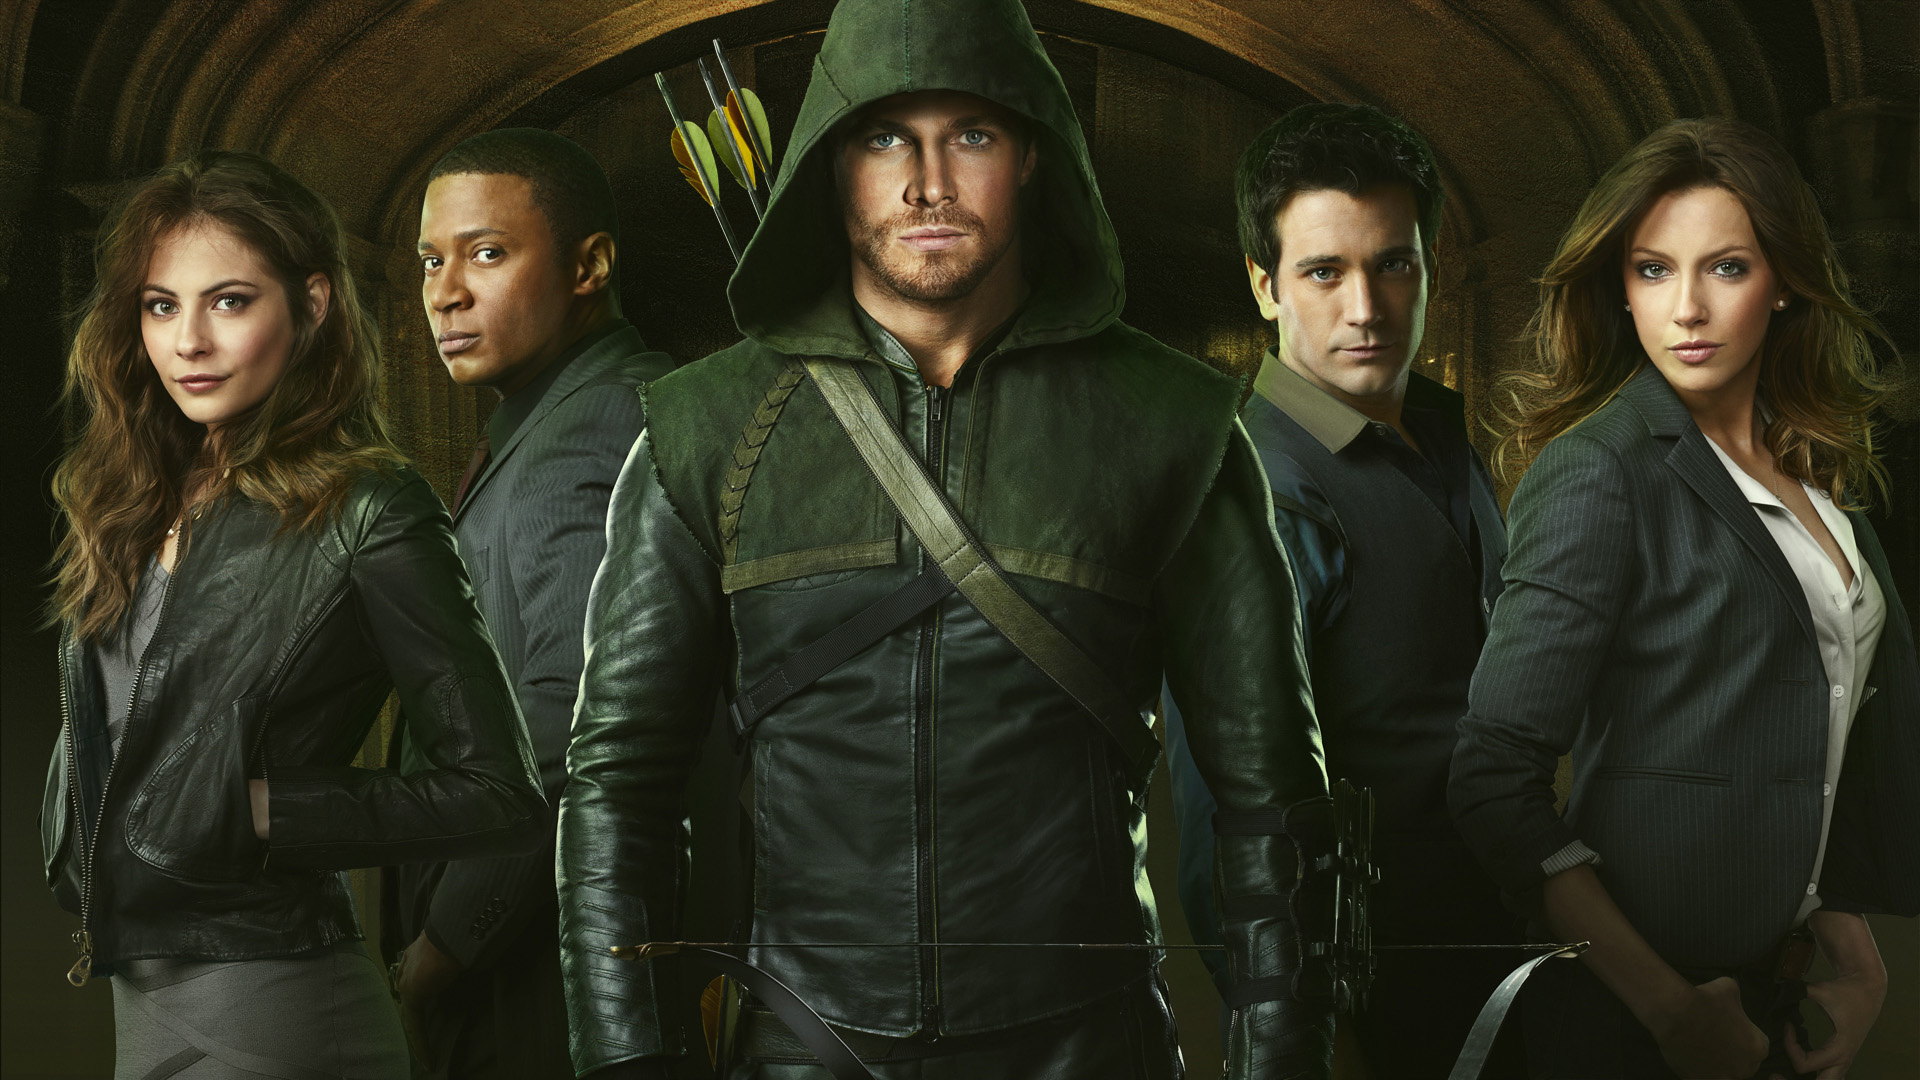 The CW Announces Fall 2013 Schedule